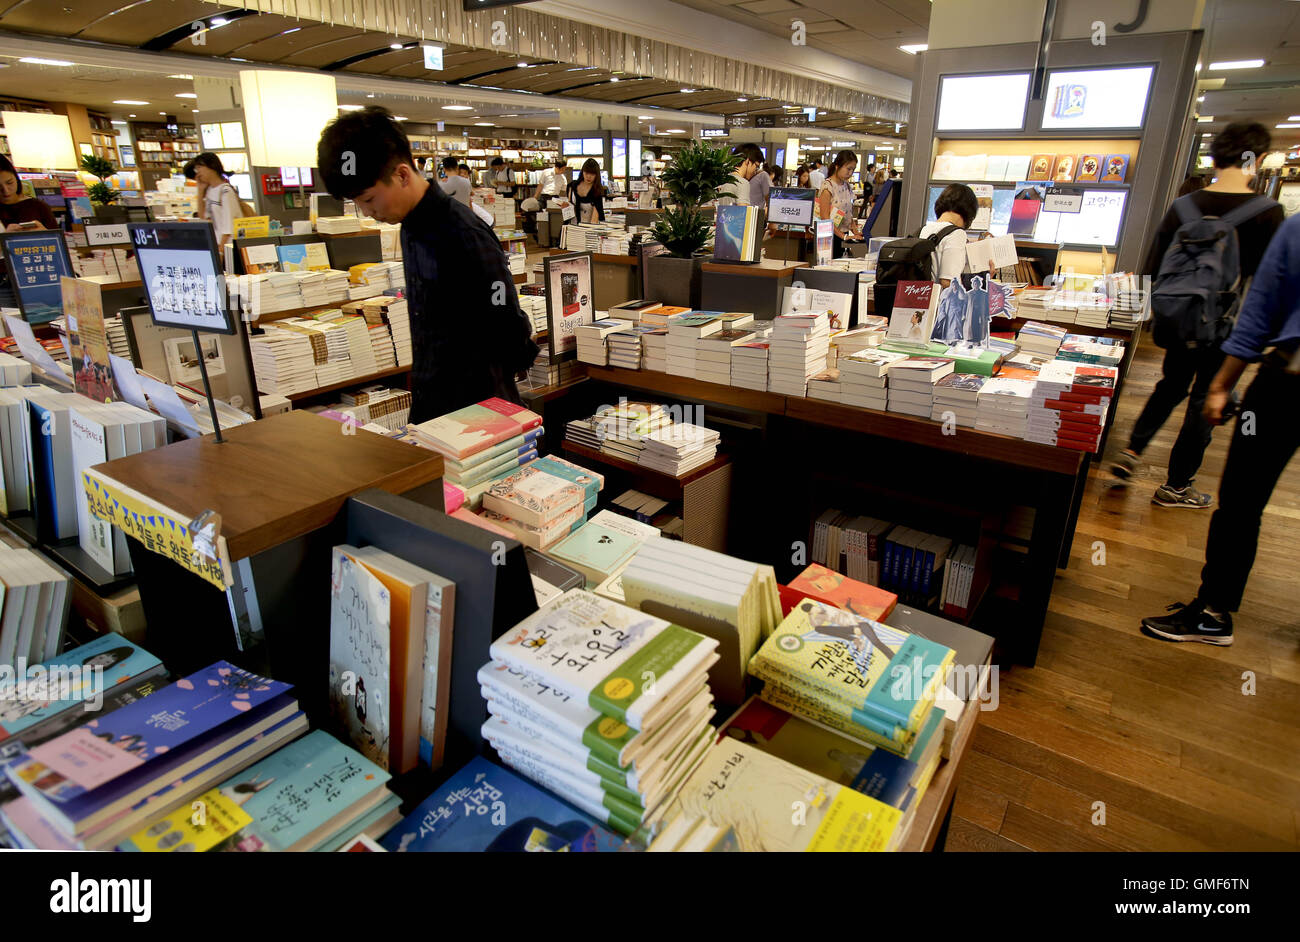 Seoul, South Korea  20th Aug, 2016  People read books in